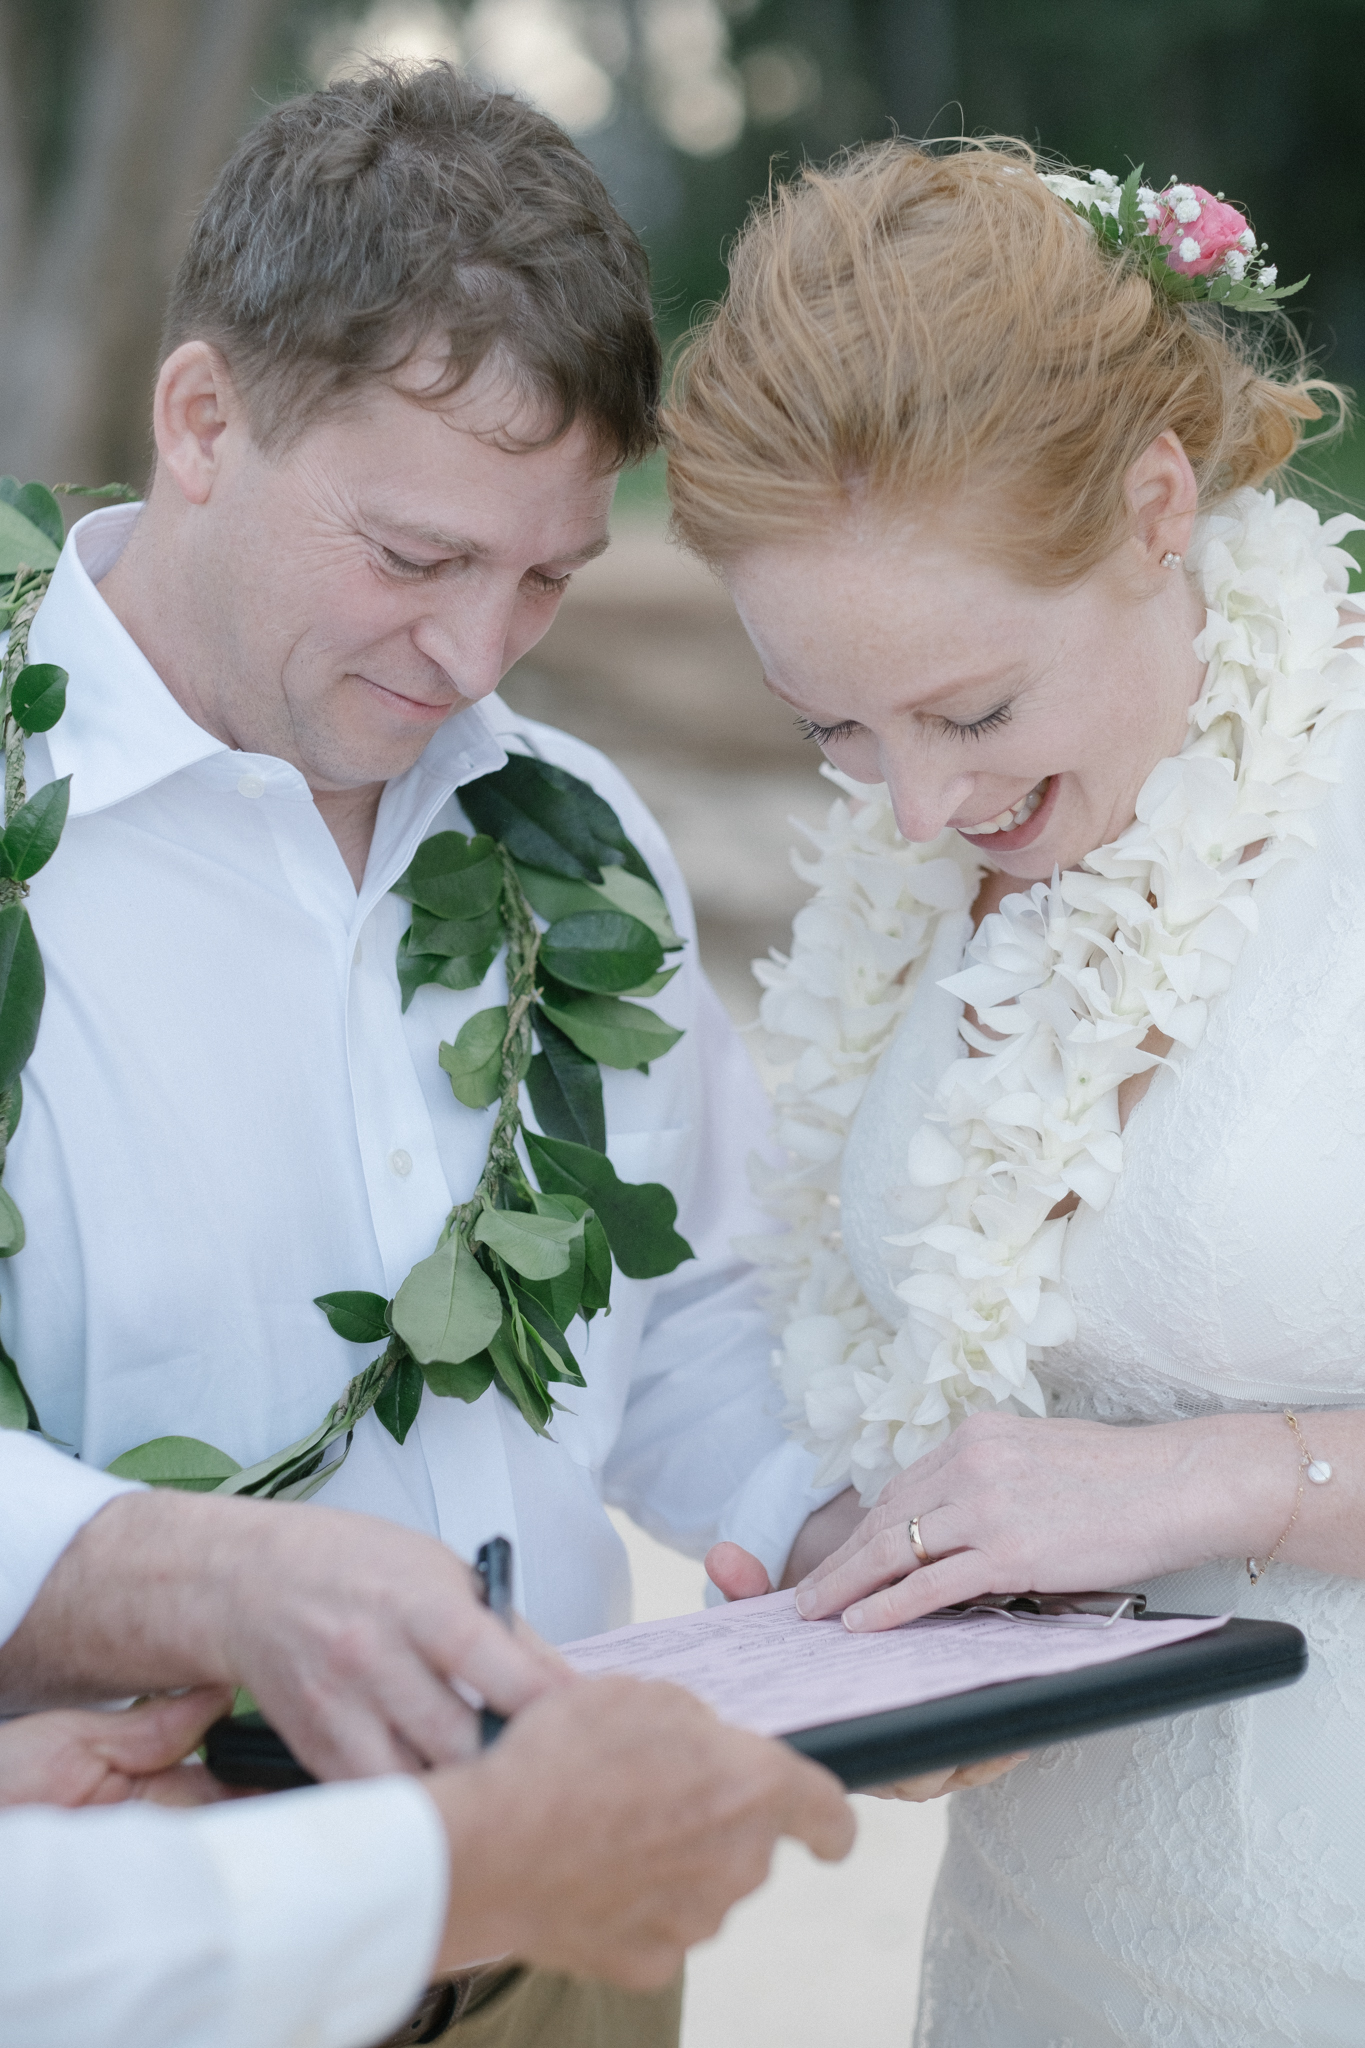 waimanalo_beach_wedding_photographer-33.jpg